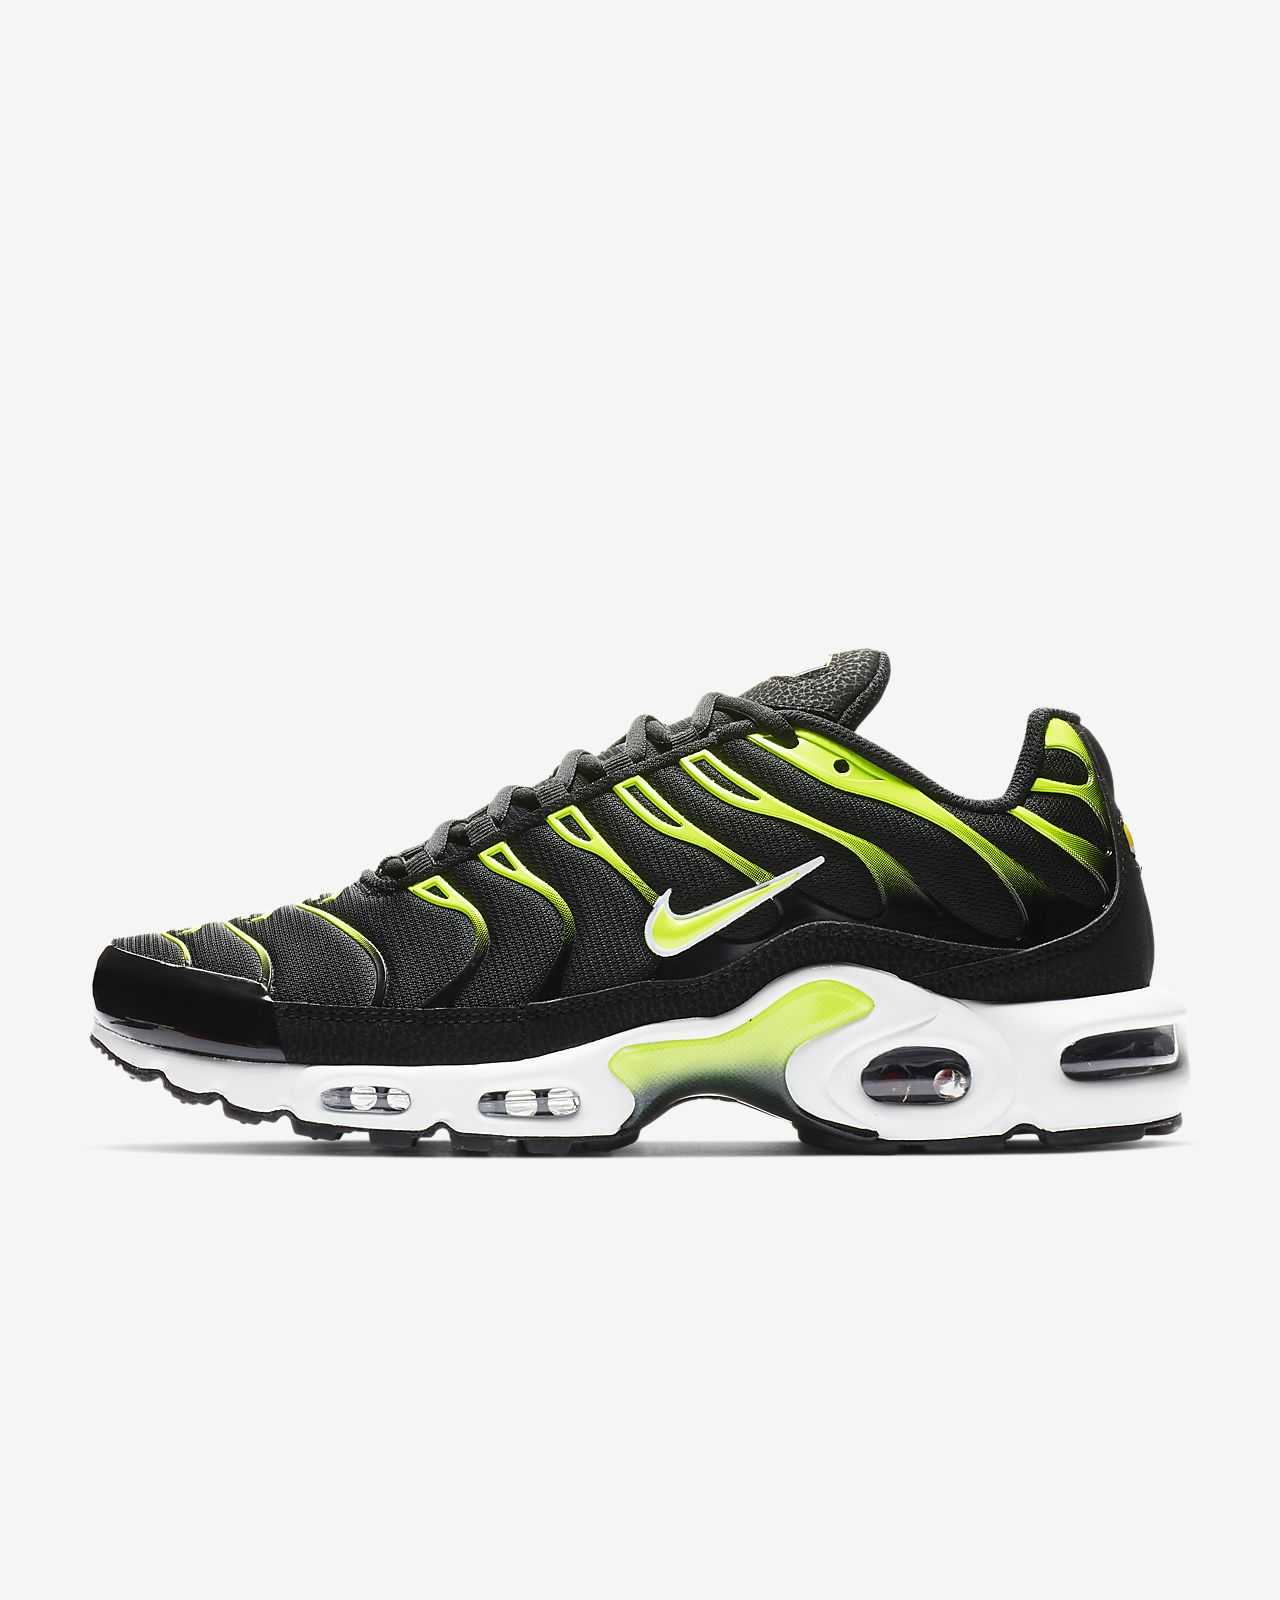 separation shoes 23658 b887c Nike Air Max Plus